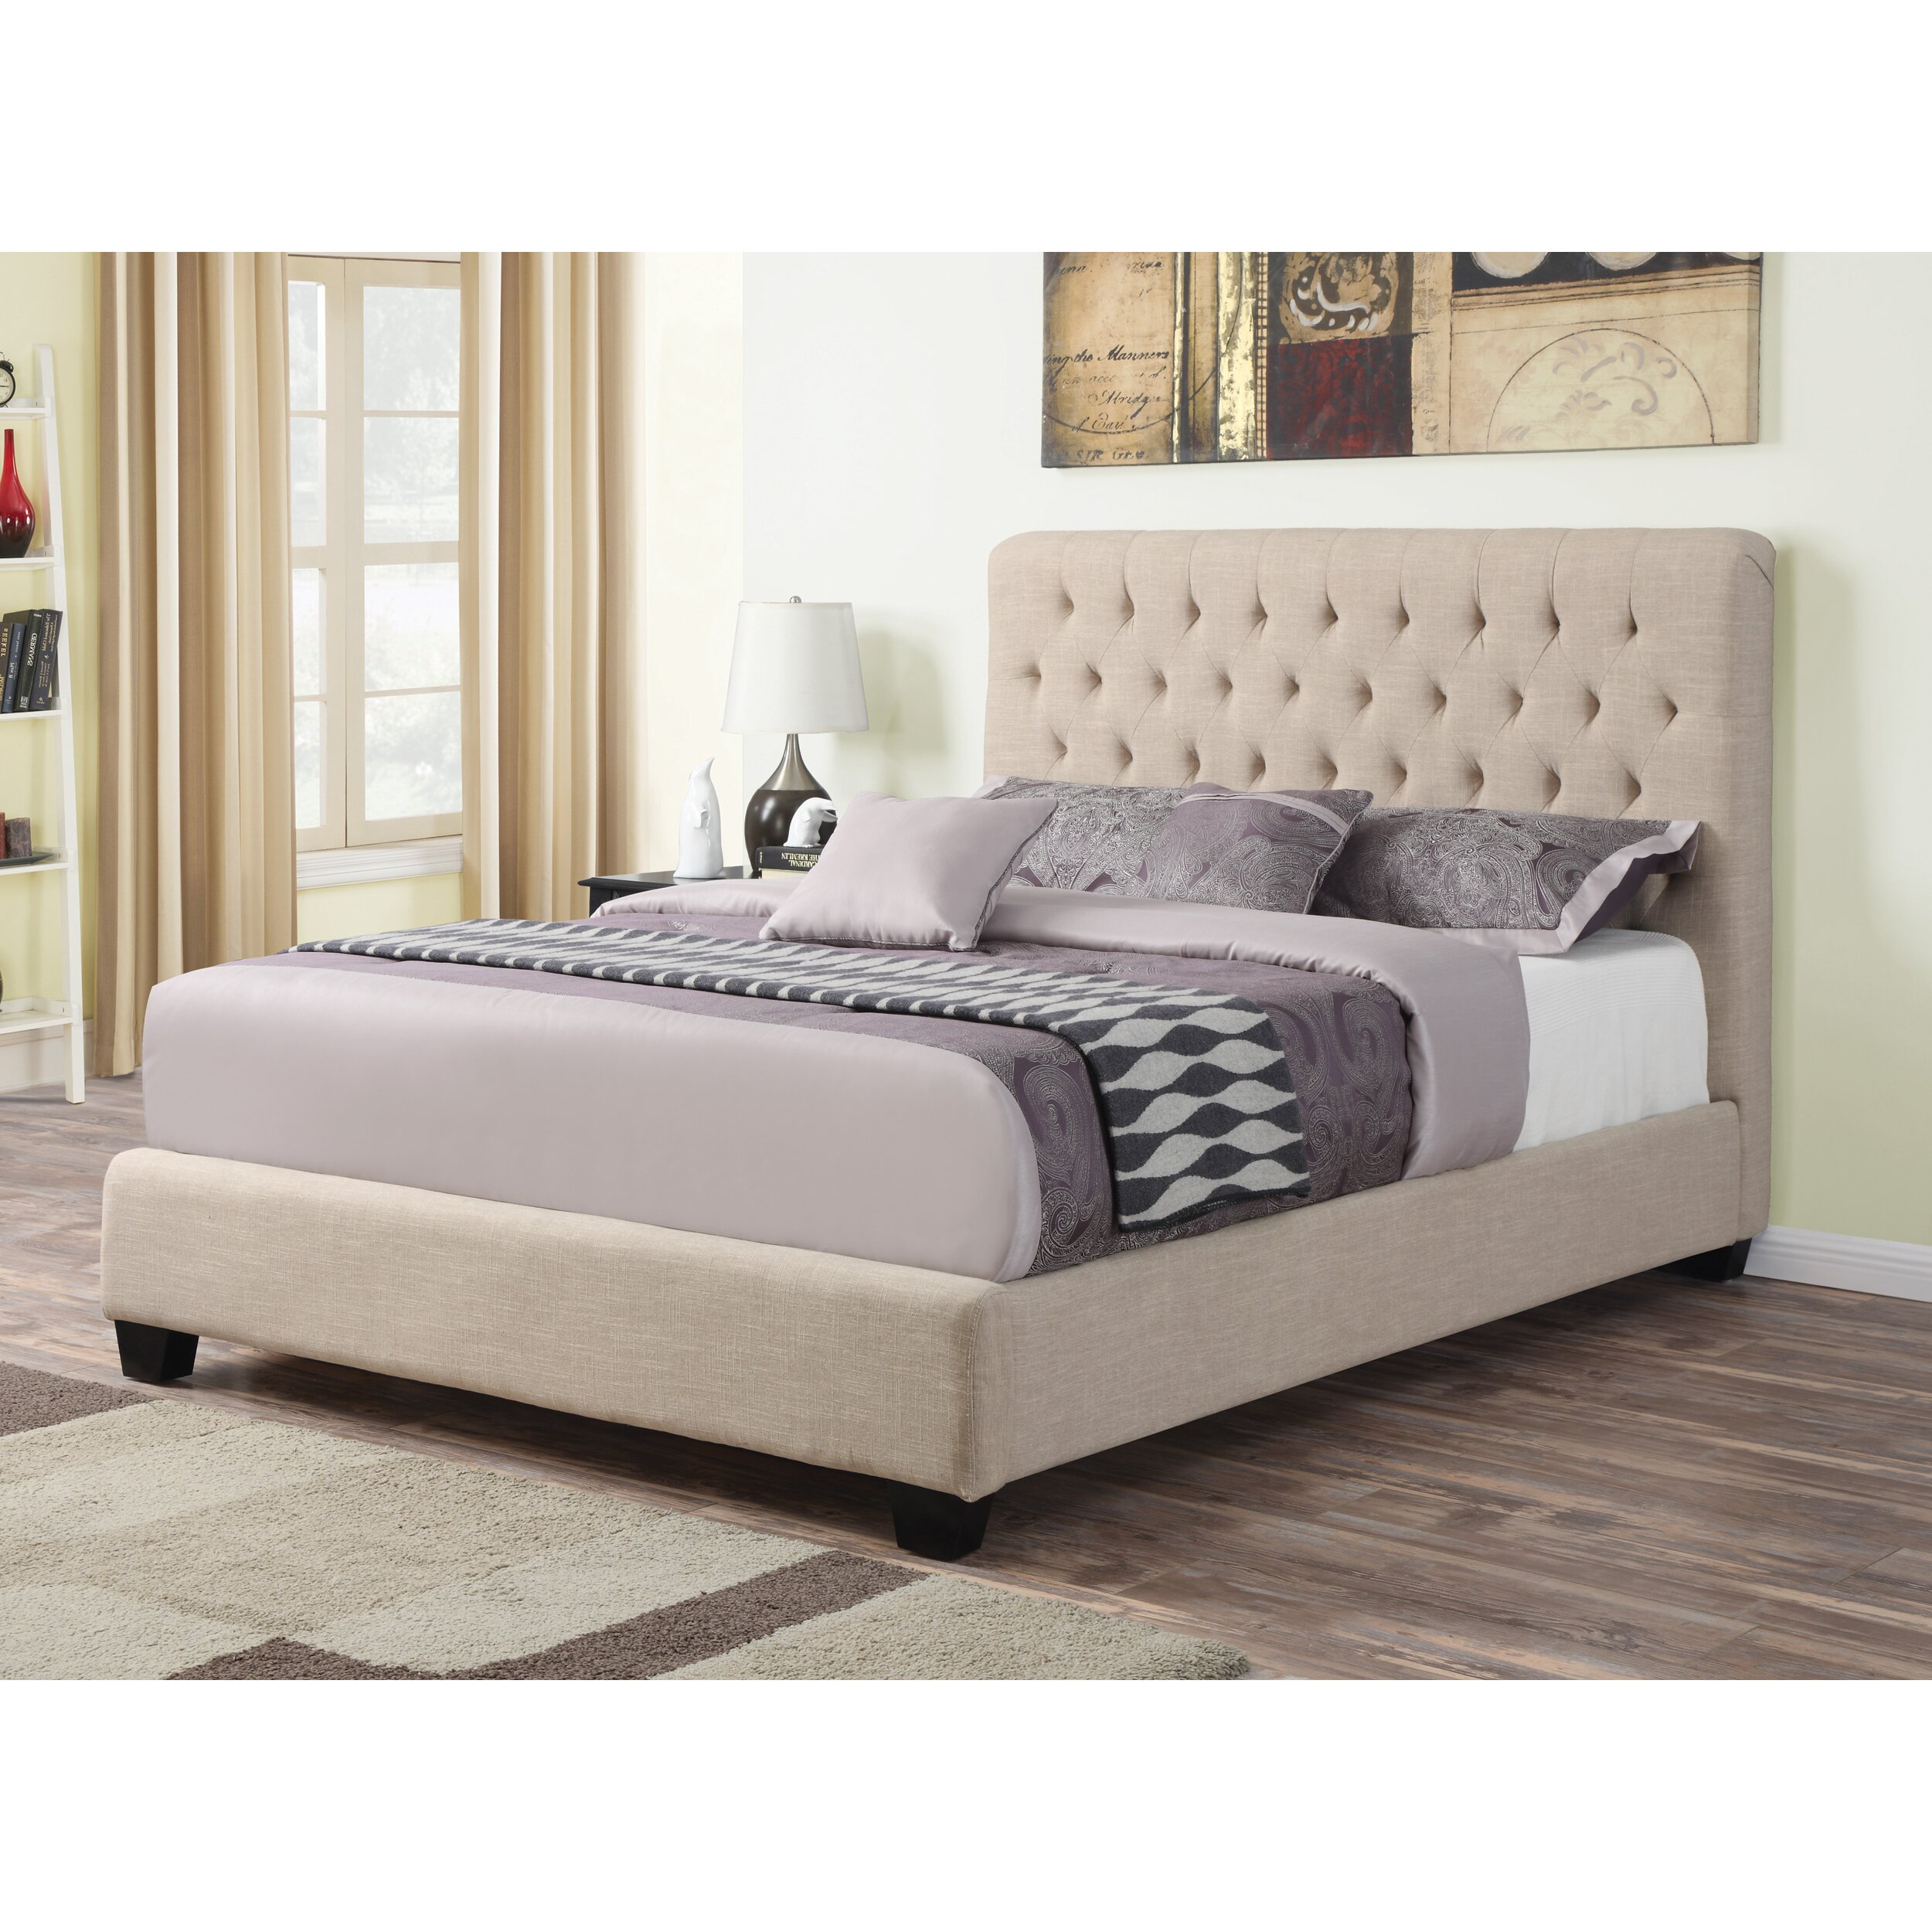 Wildon Home Upholstered Panel Bed Reviews Wayfair